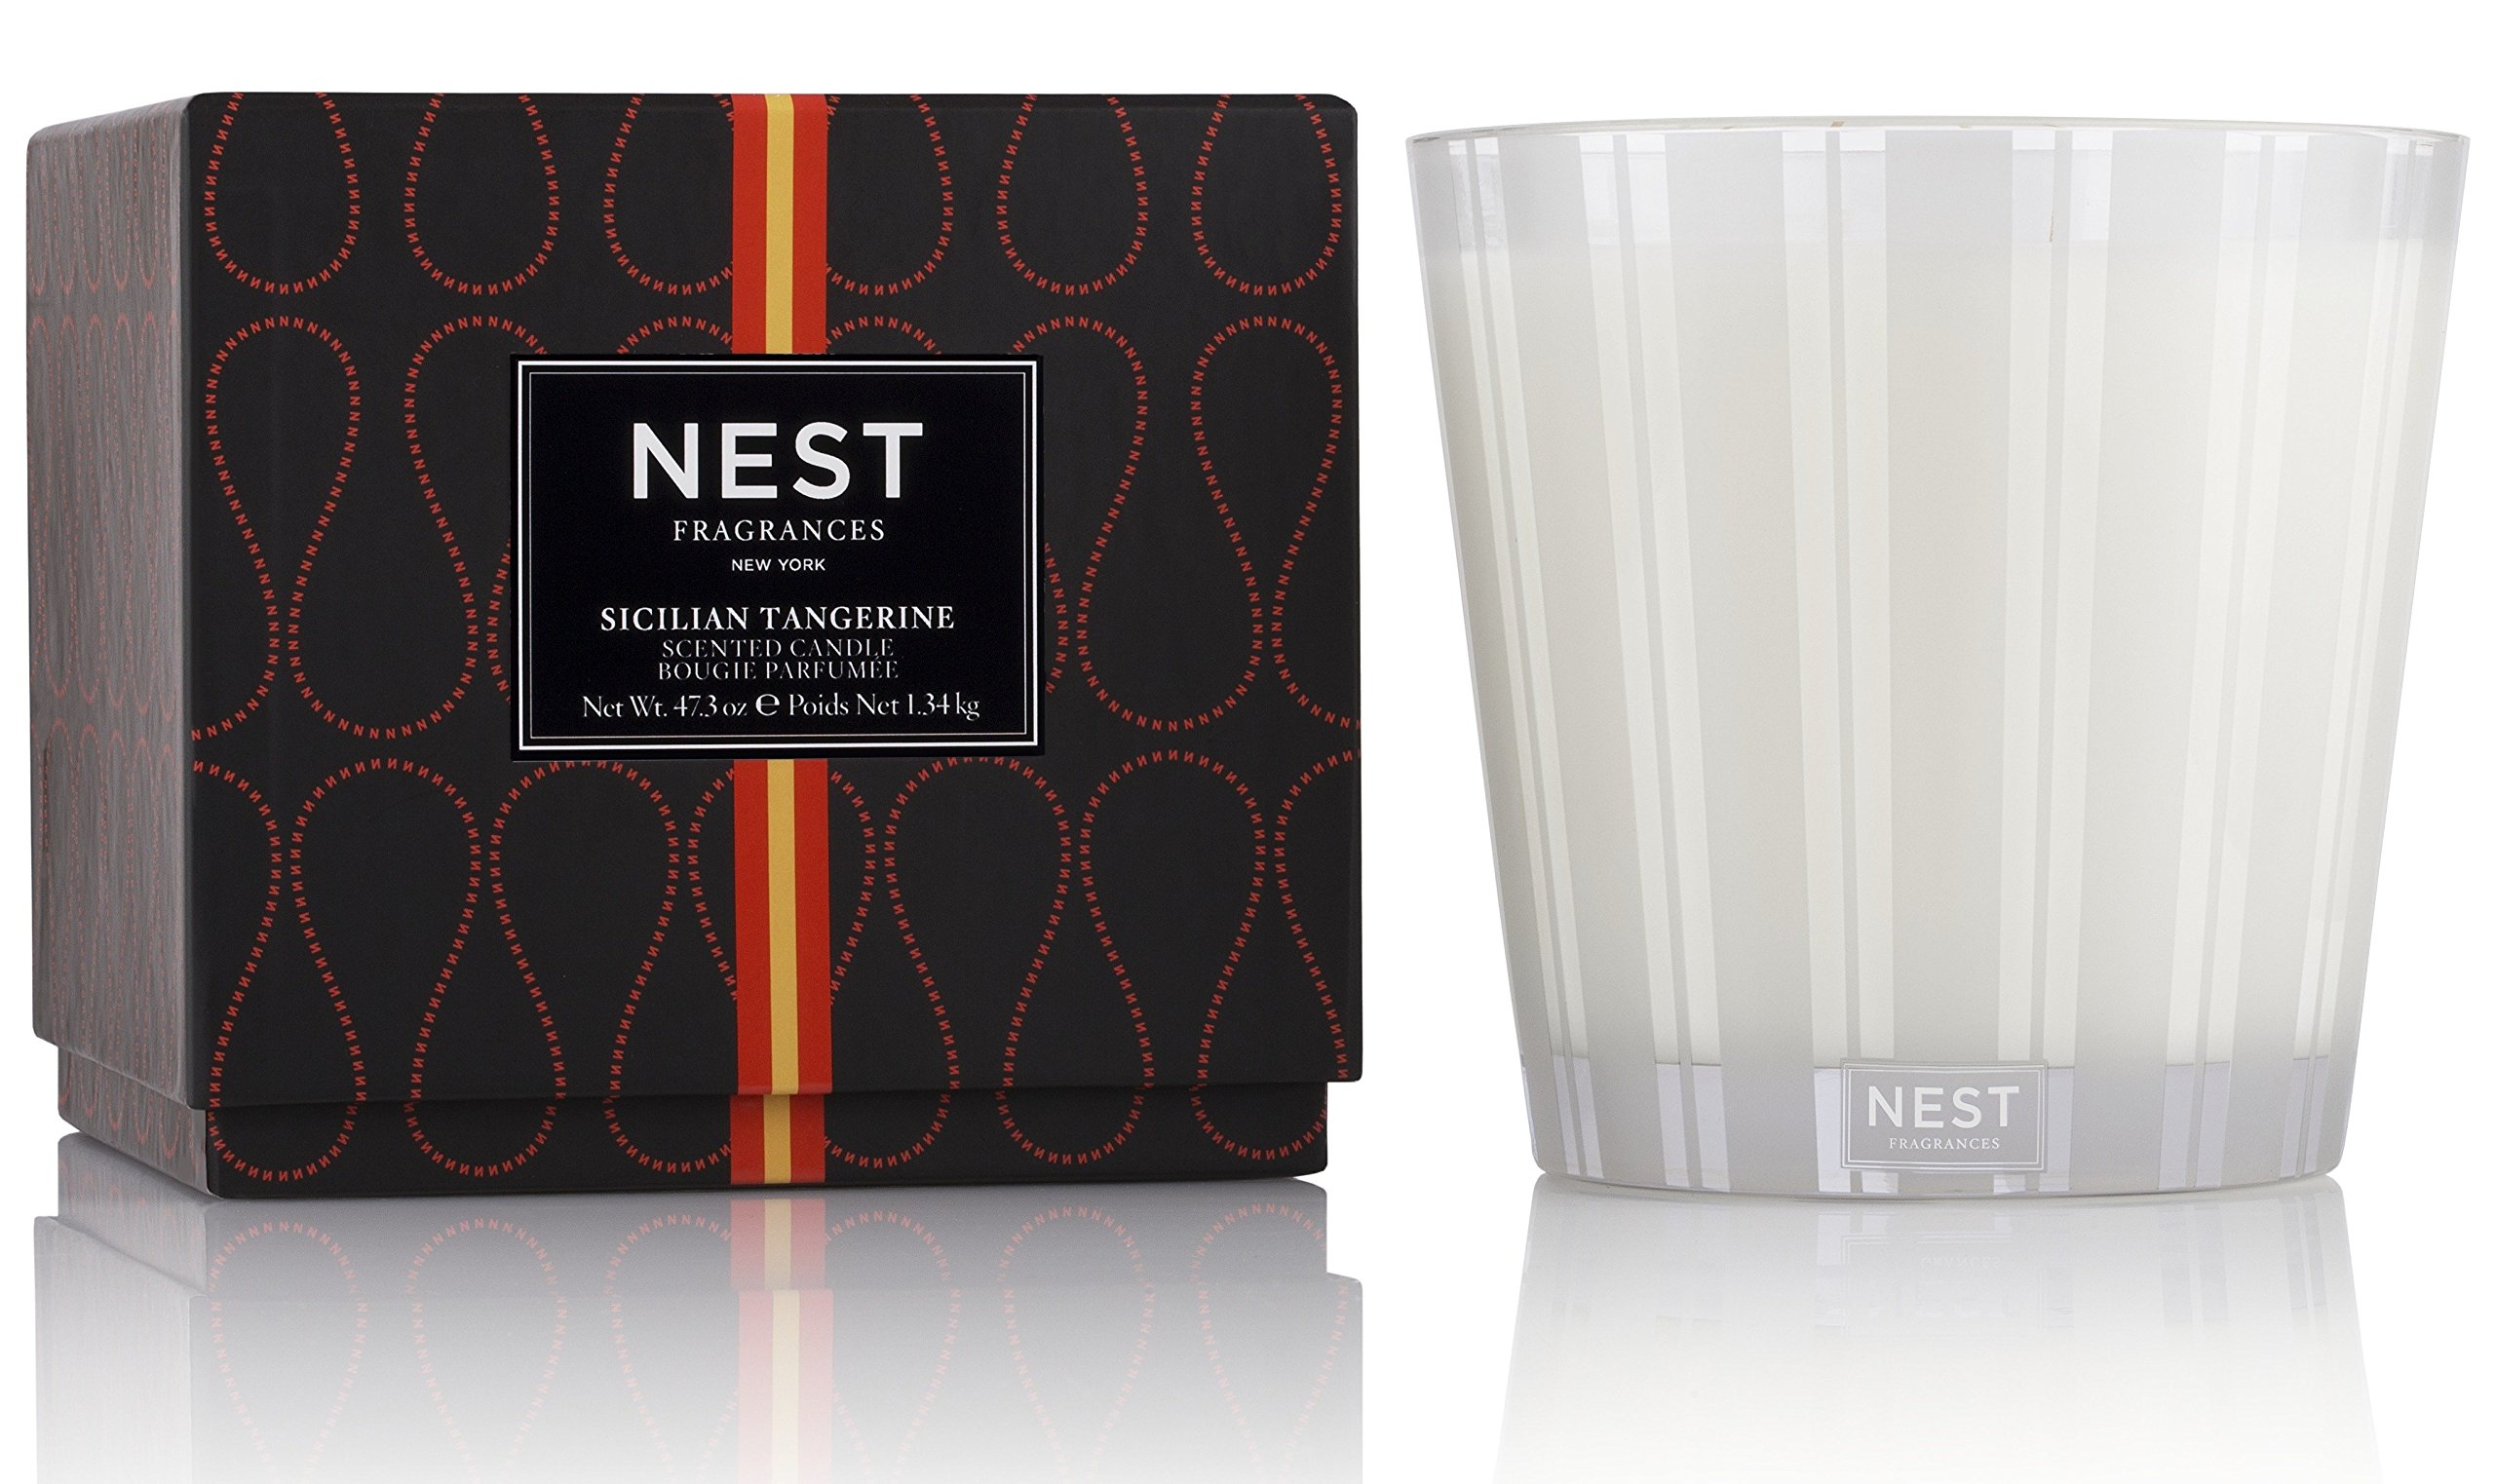 NEST Fragrances Sicilian Tangerine Luxury Candle